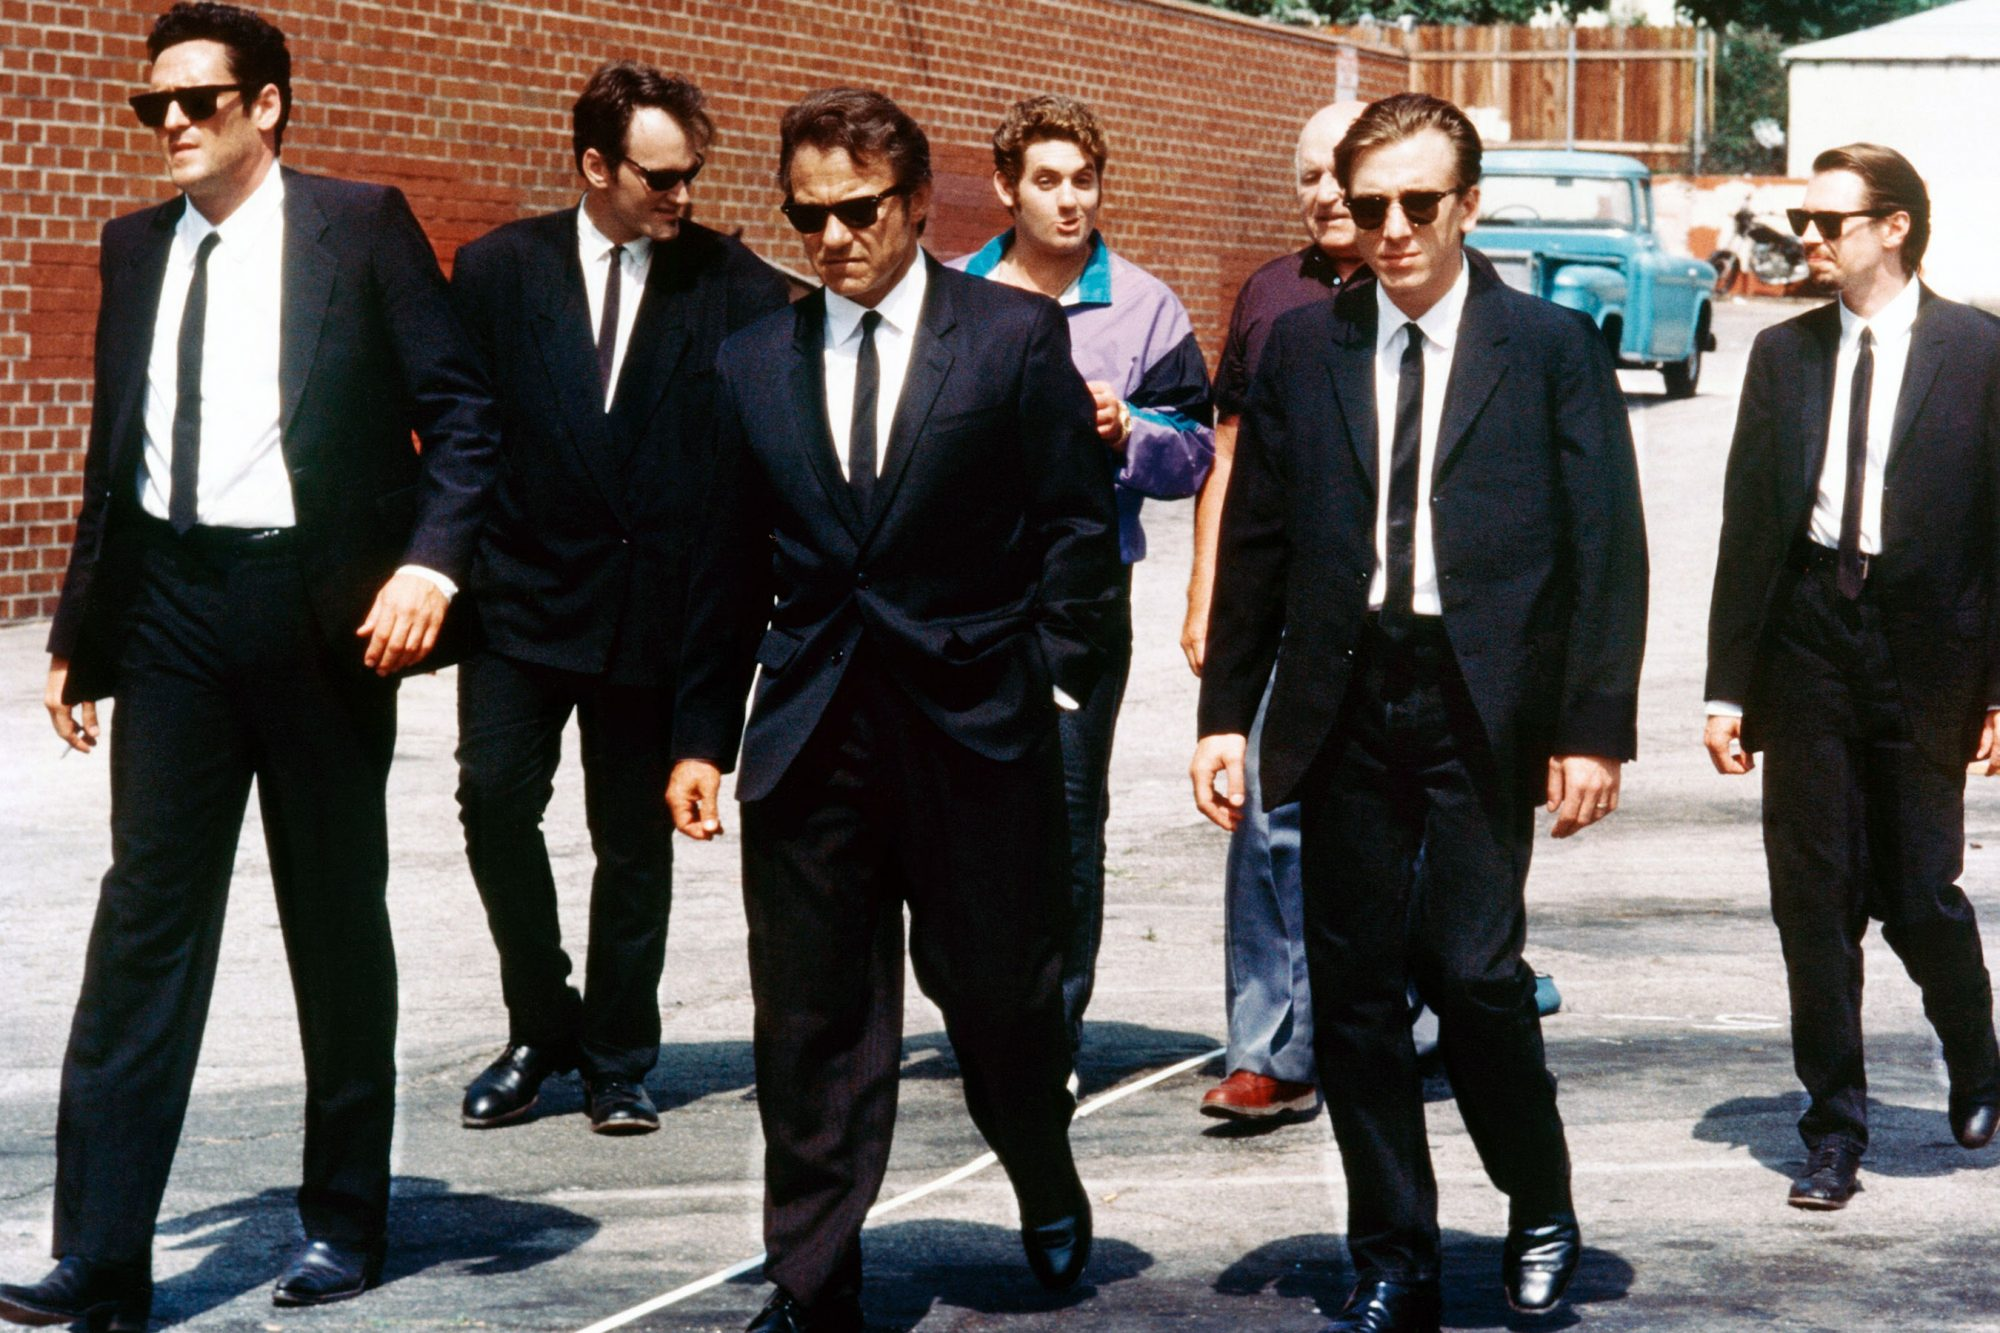 RESERVOIR DOGS, Michael  Madsen, Quentin Tarantino, Harvey Keitel, Christopher Penn, Lawrence Tierne